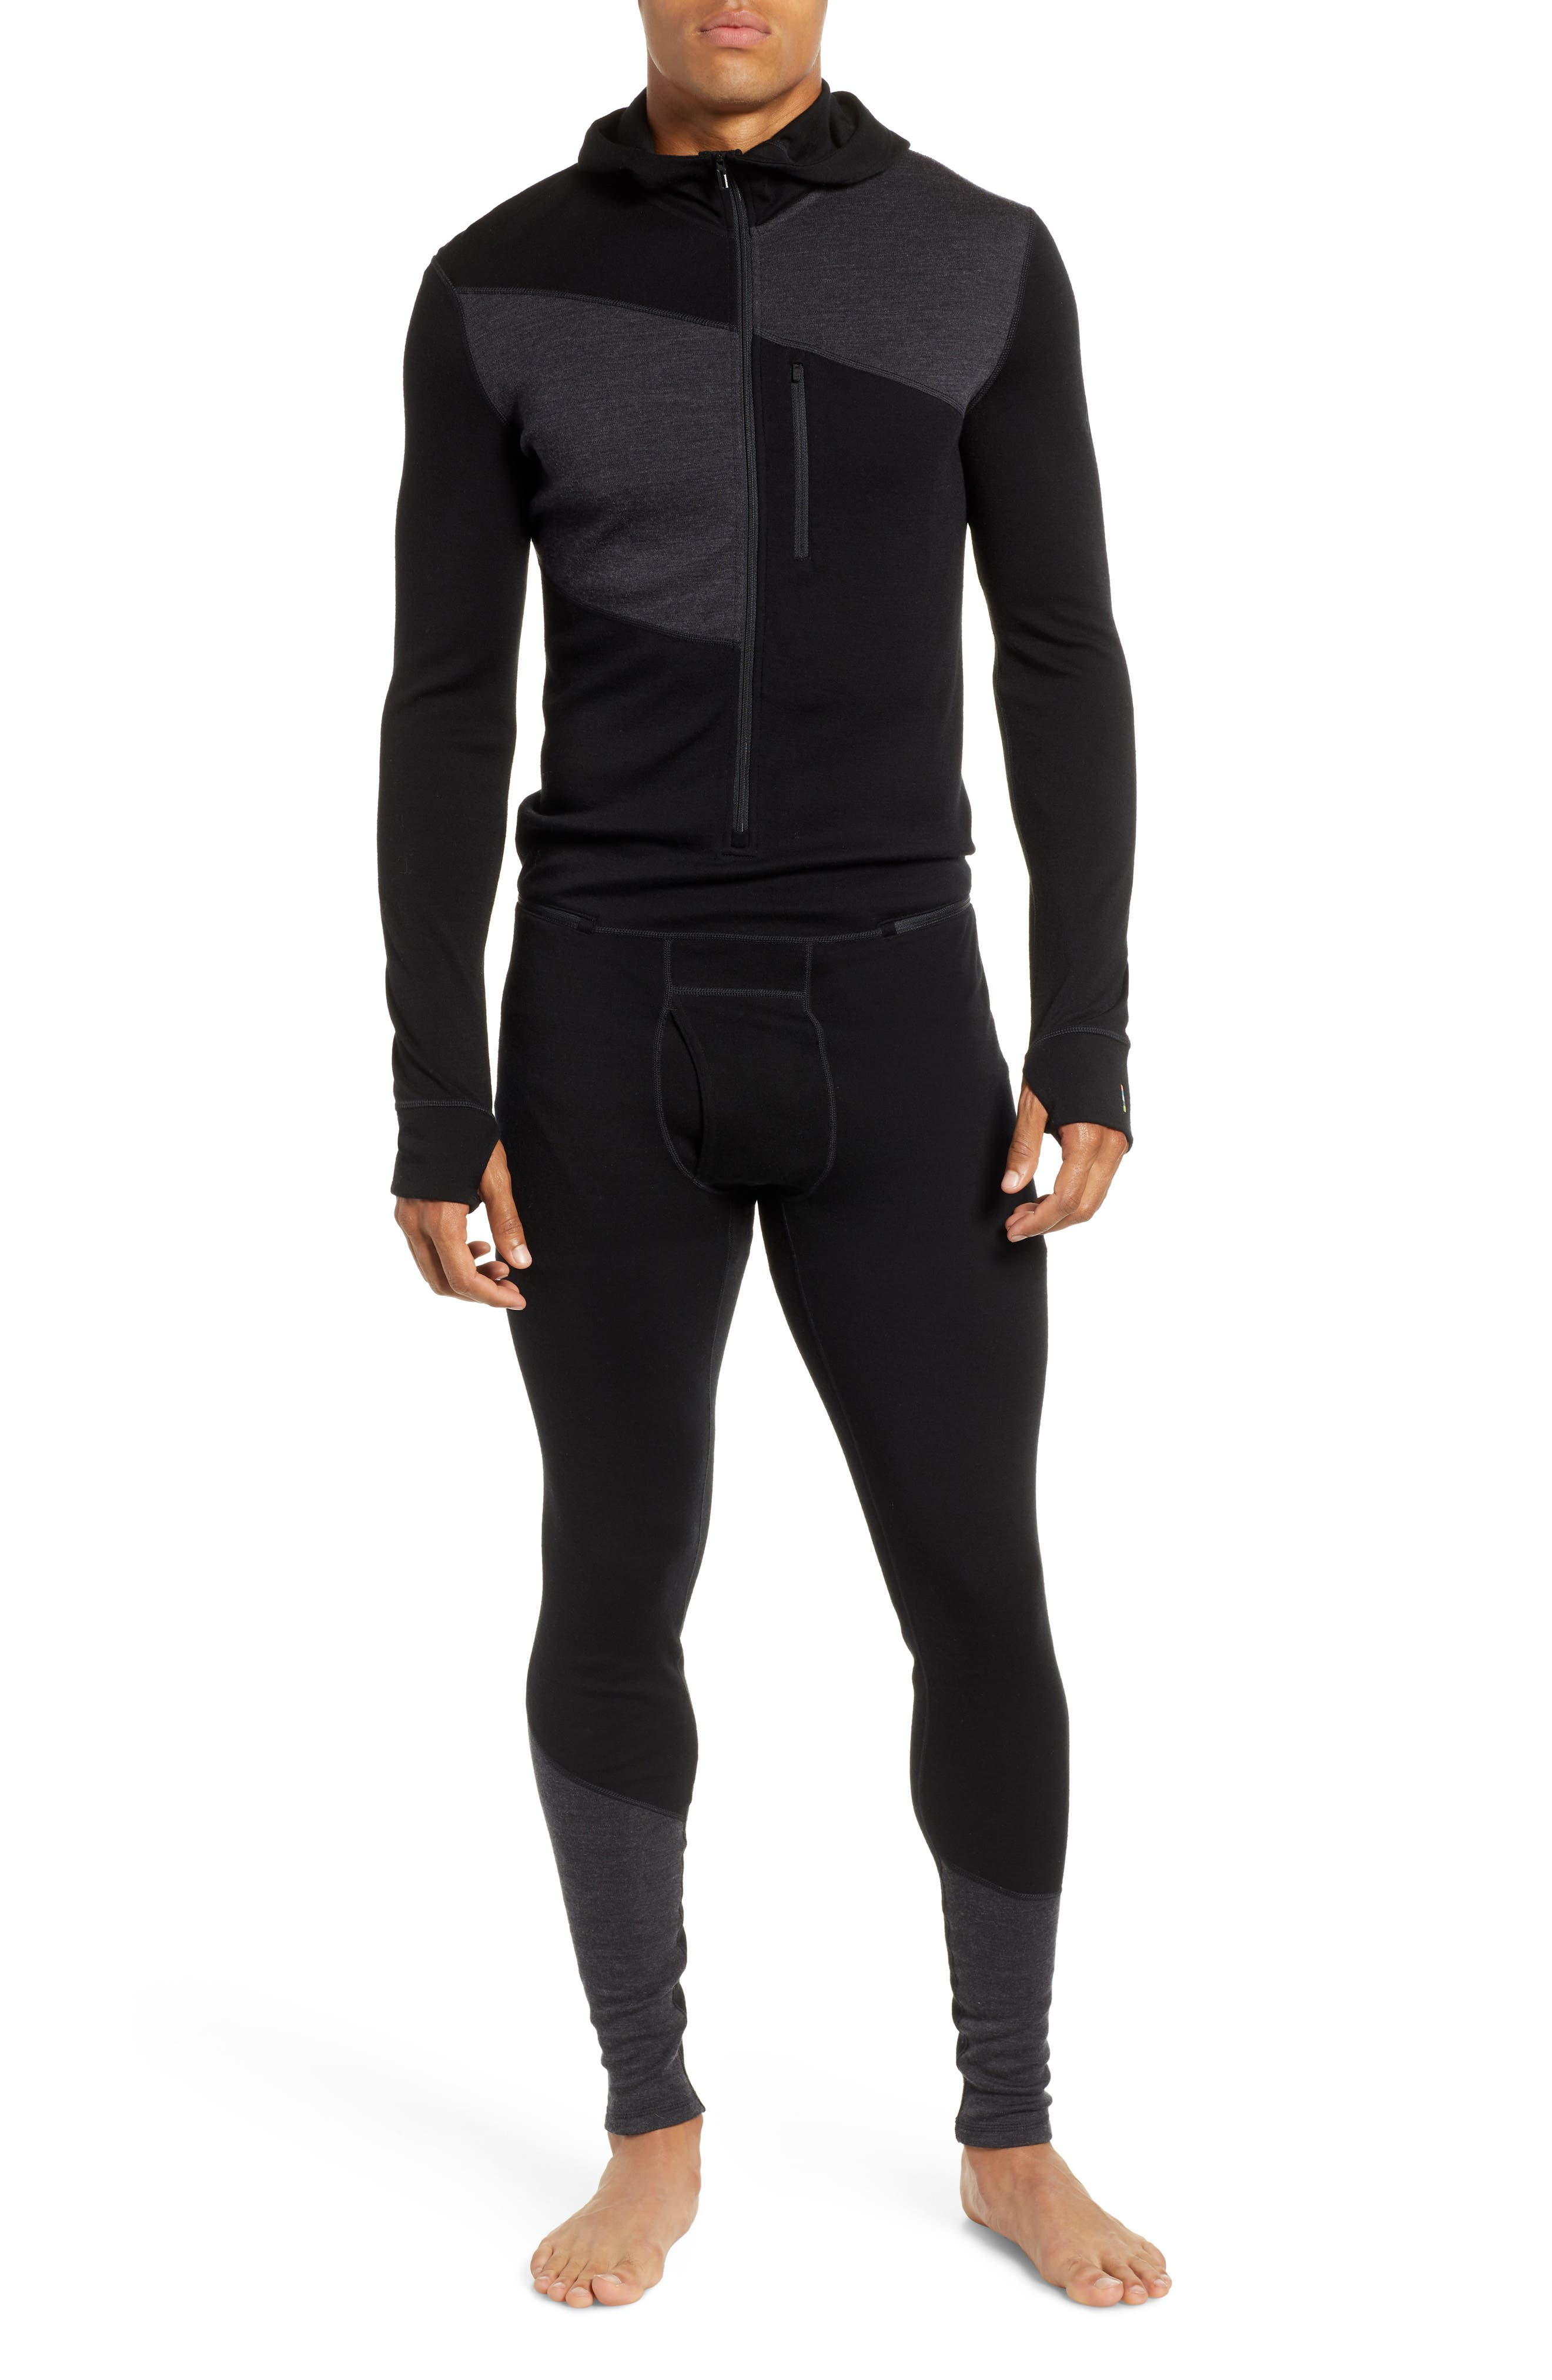 SMARTWOOL Merino 250 Hooded One-Piece Base Layer, Main, color, CHARCOAL/ BLACK